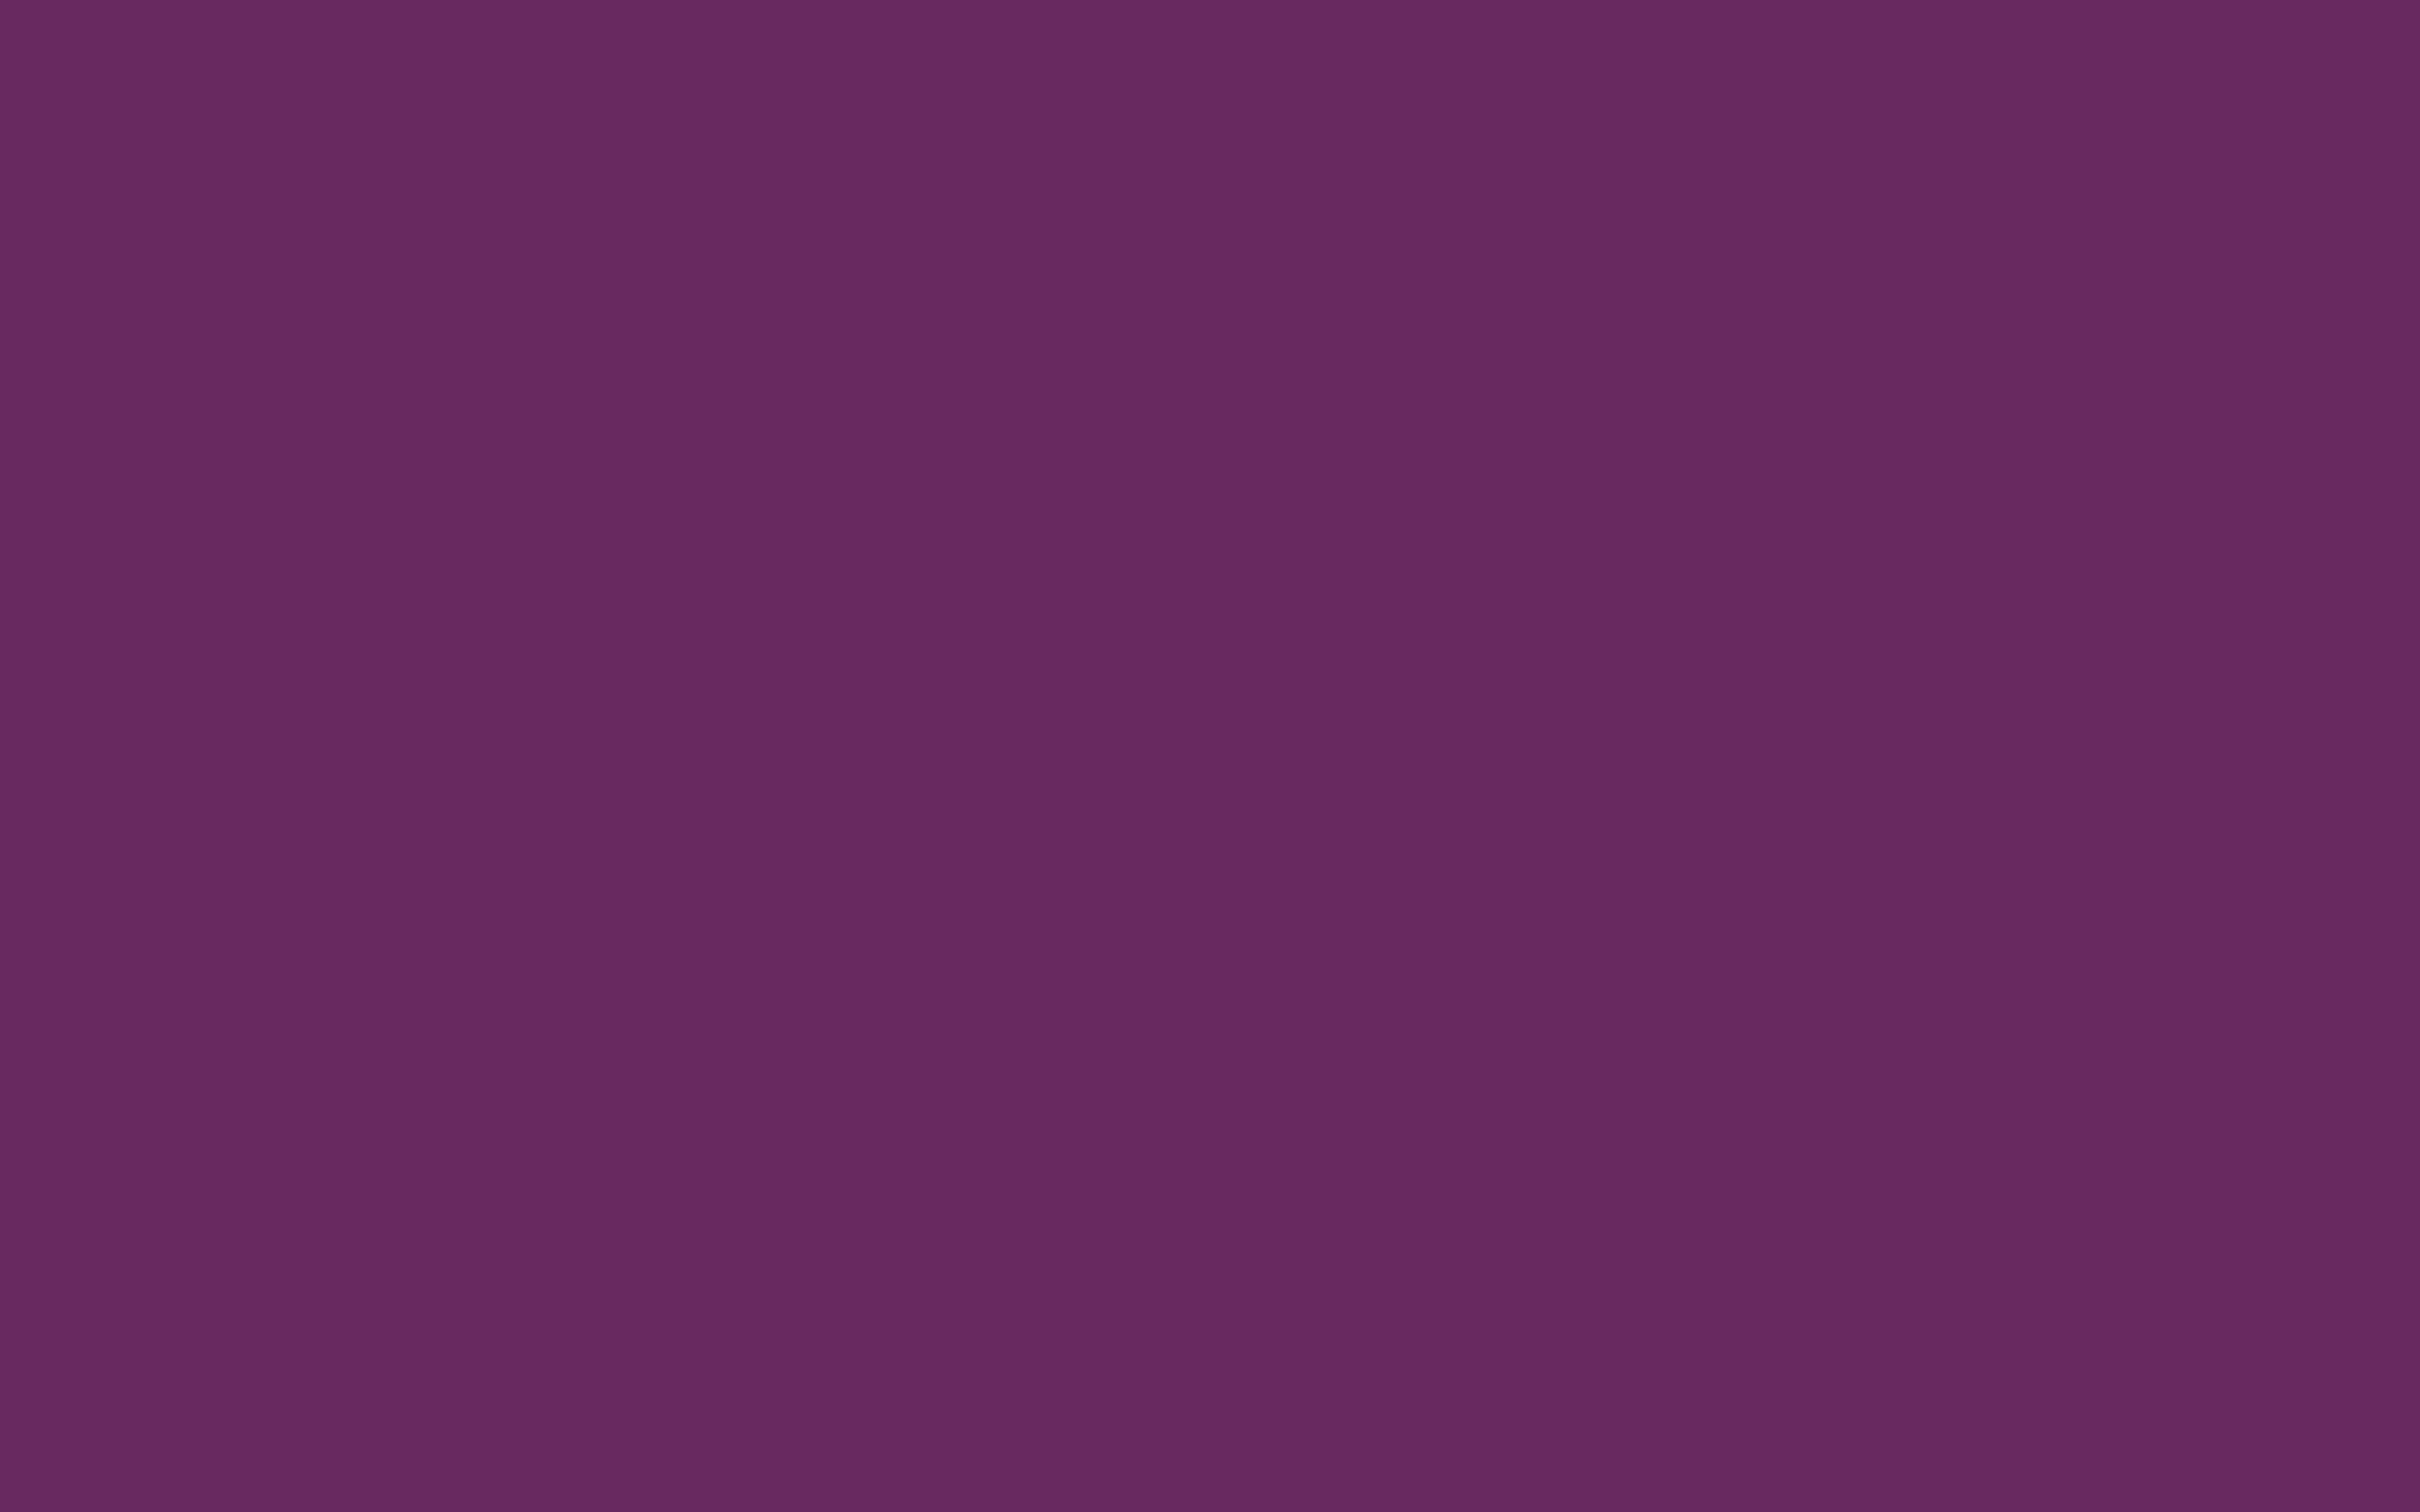 2880x1800 Palatinate Purple Solid Color Background